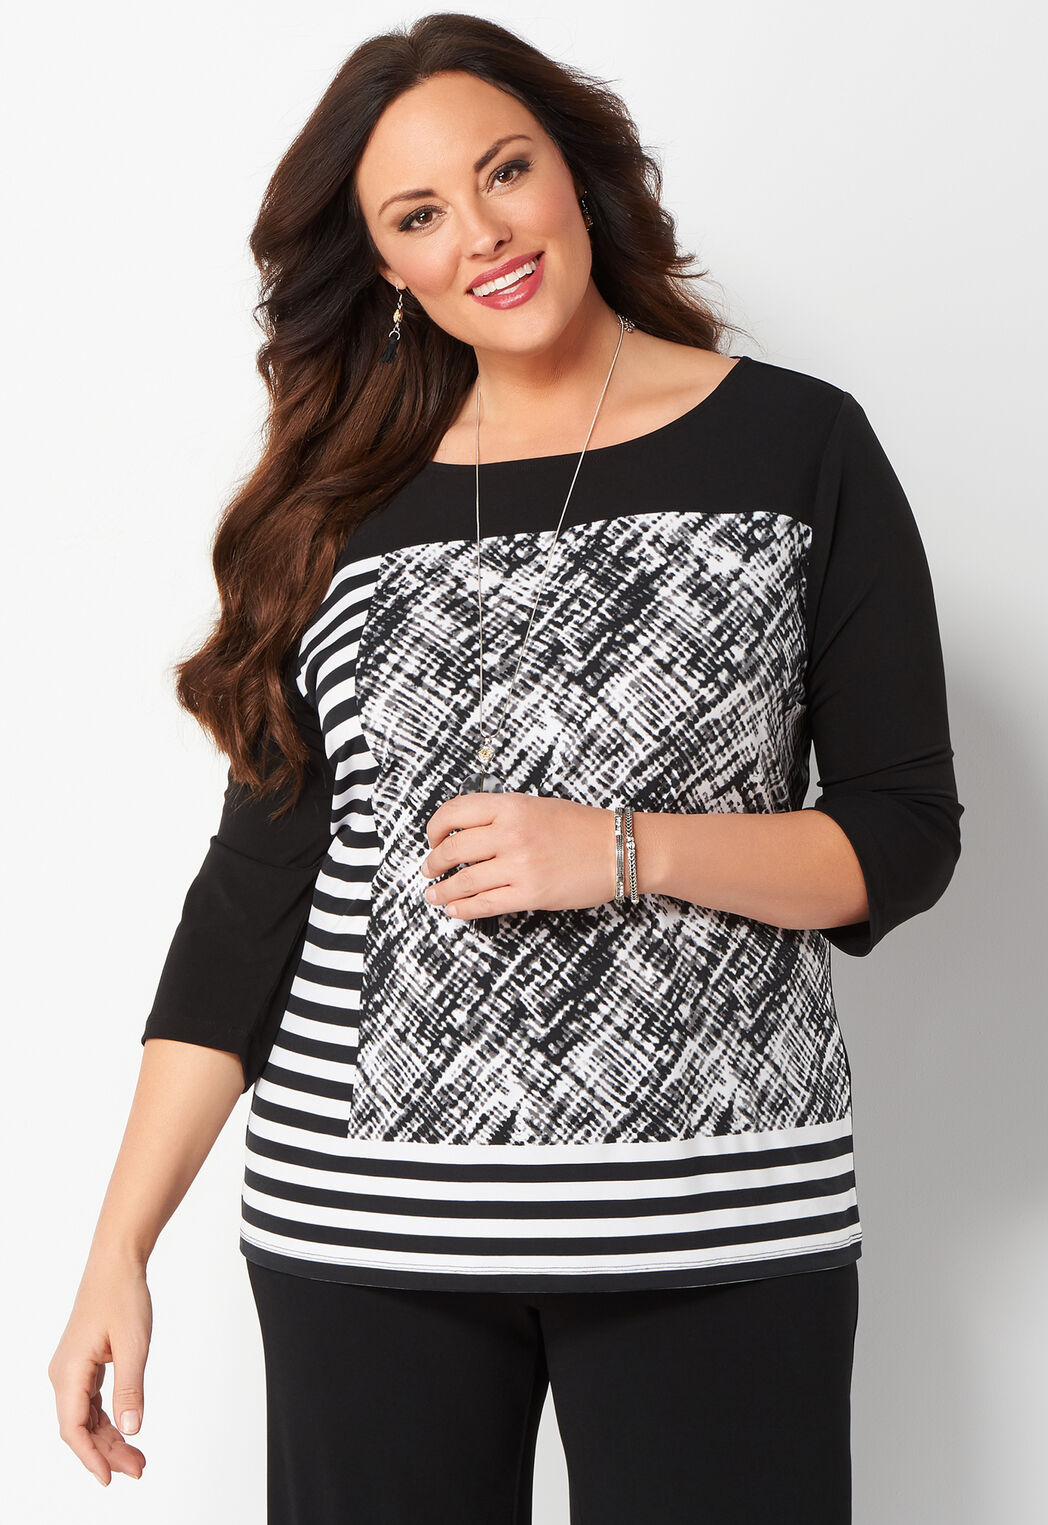 women's easy wear mixed print plus size top from christopher